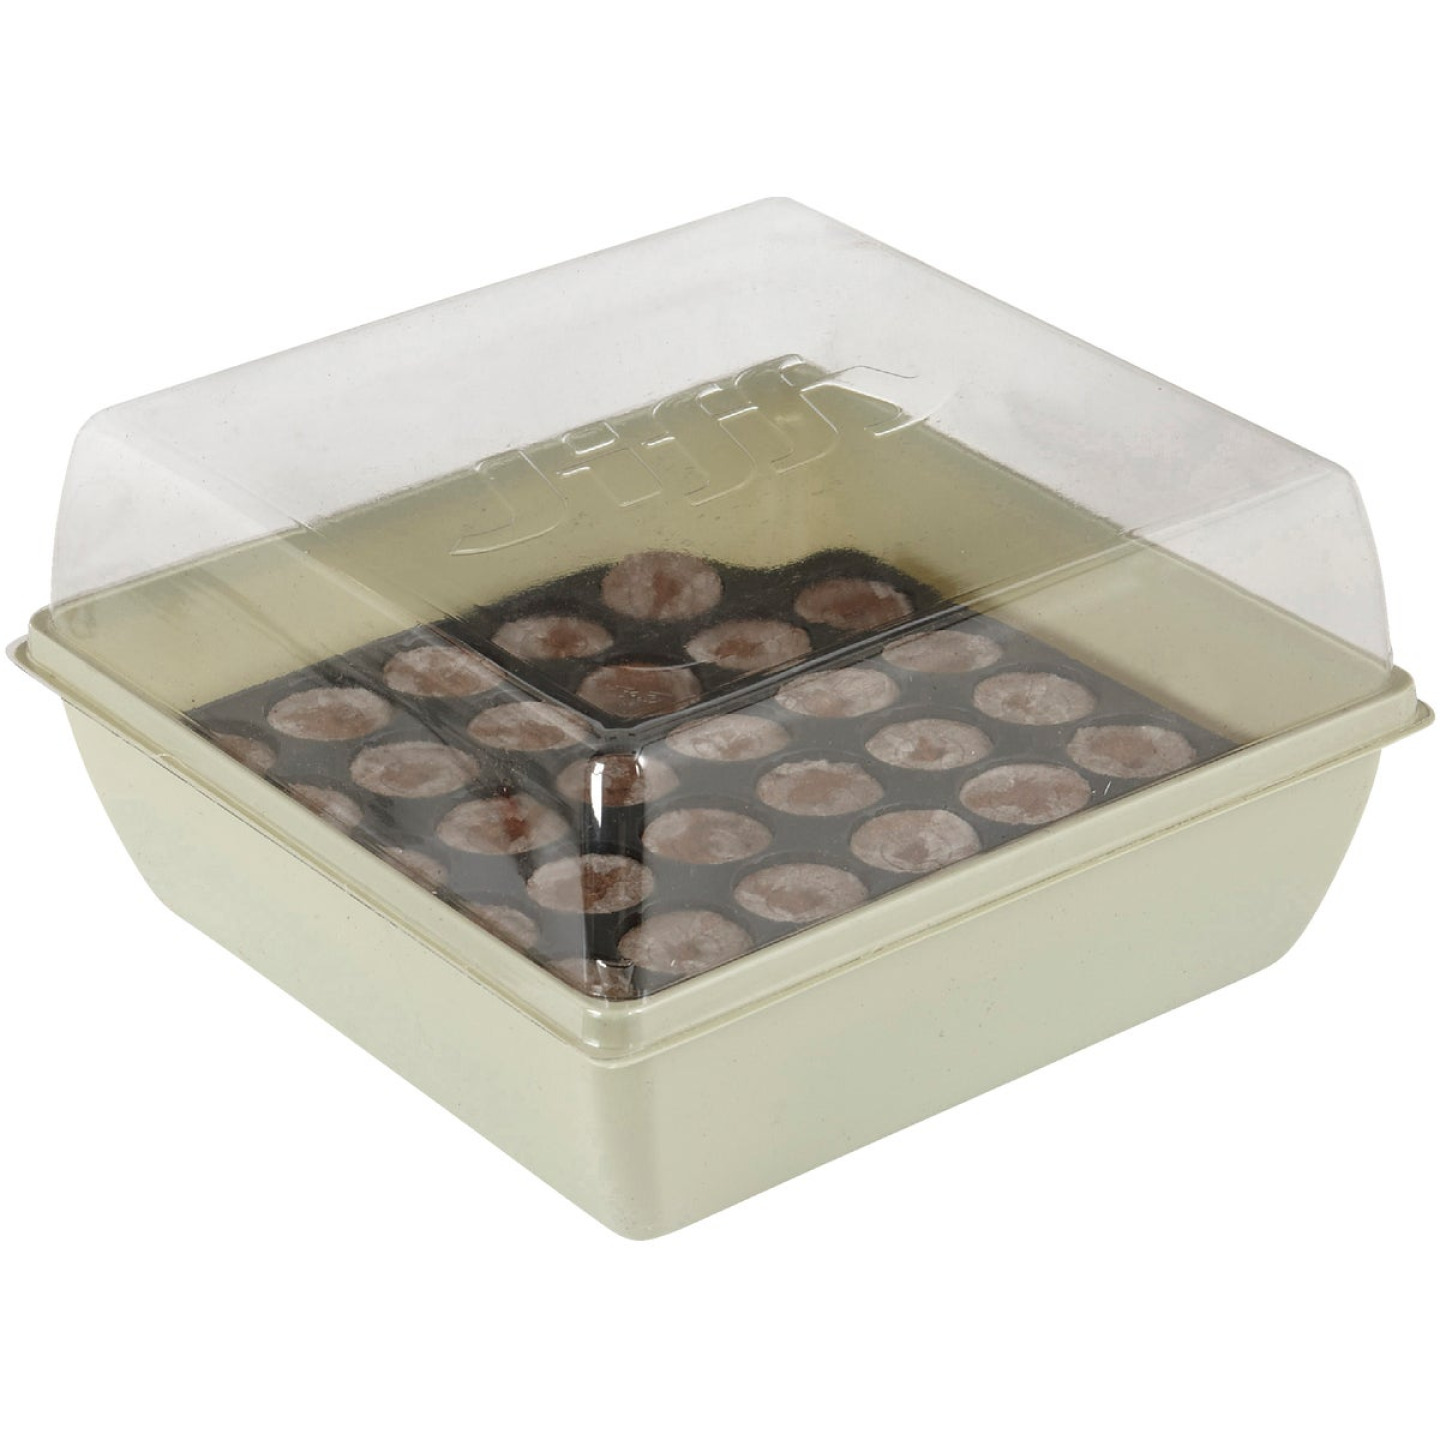 Jiffy 34-Cell 11 In. x 11 In. Self Watering Greenhouse Seed Starter Kit Image 3